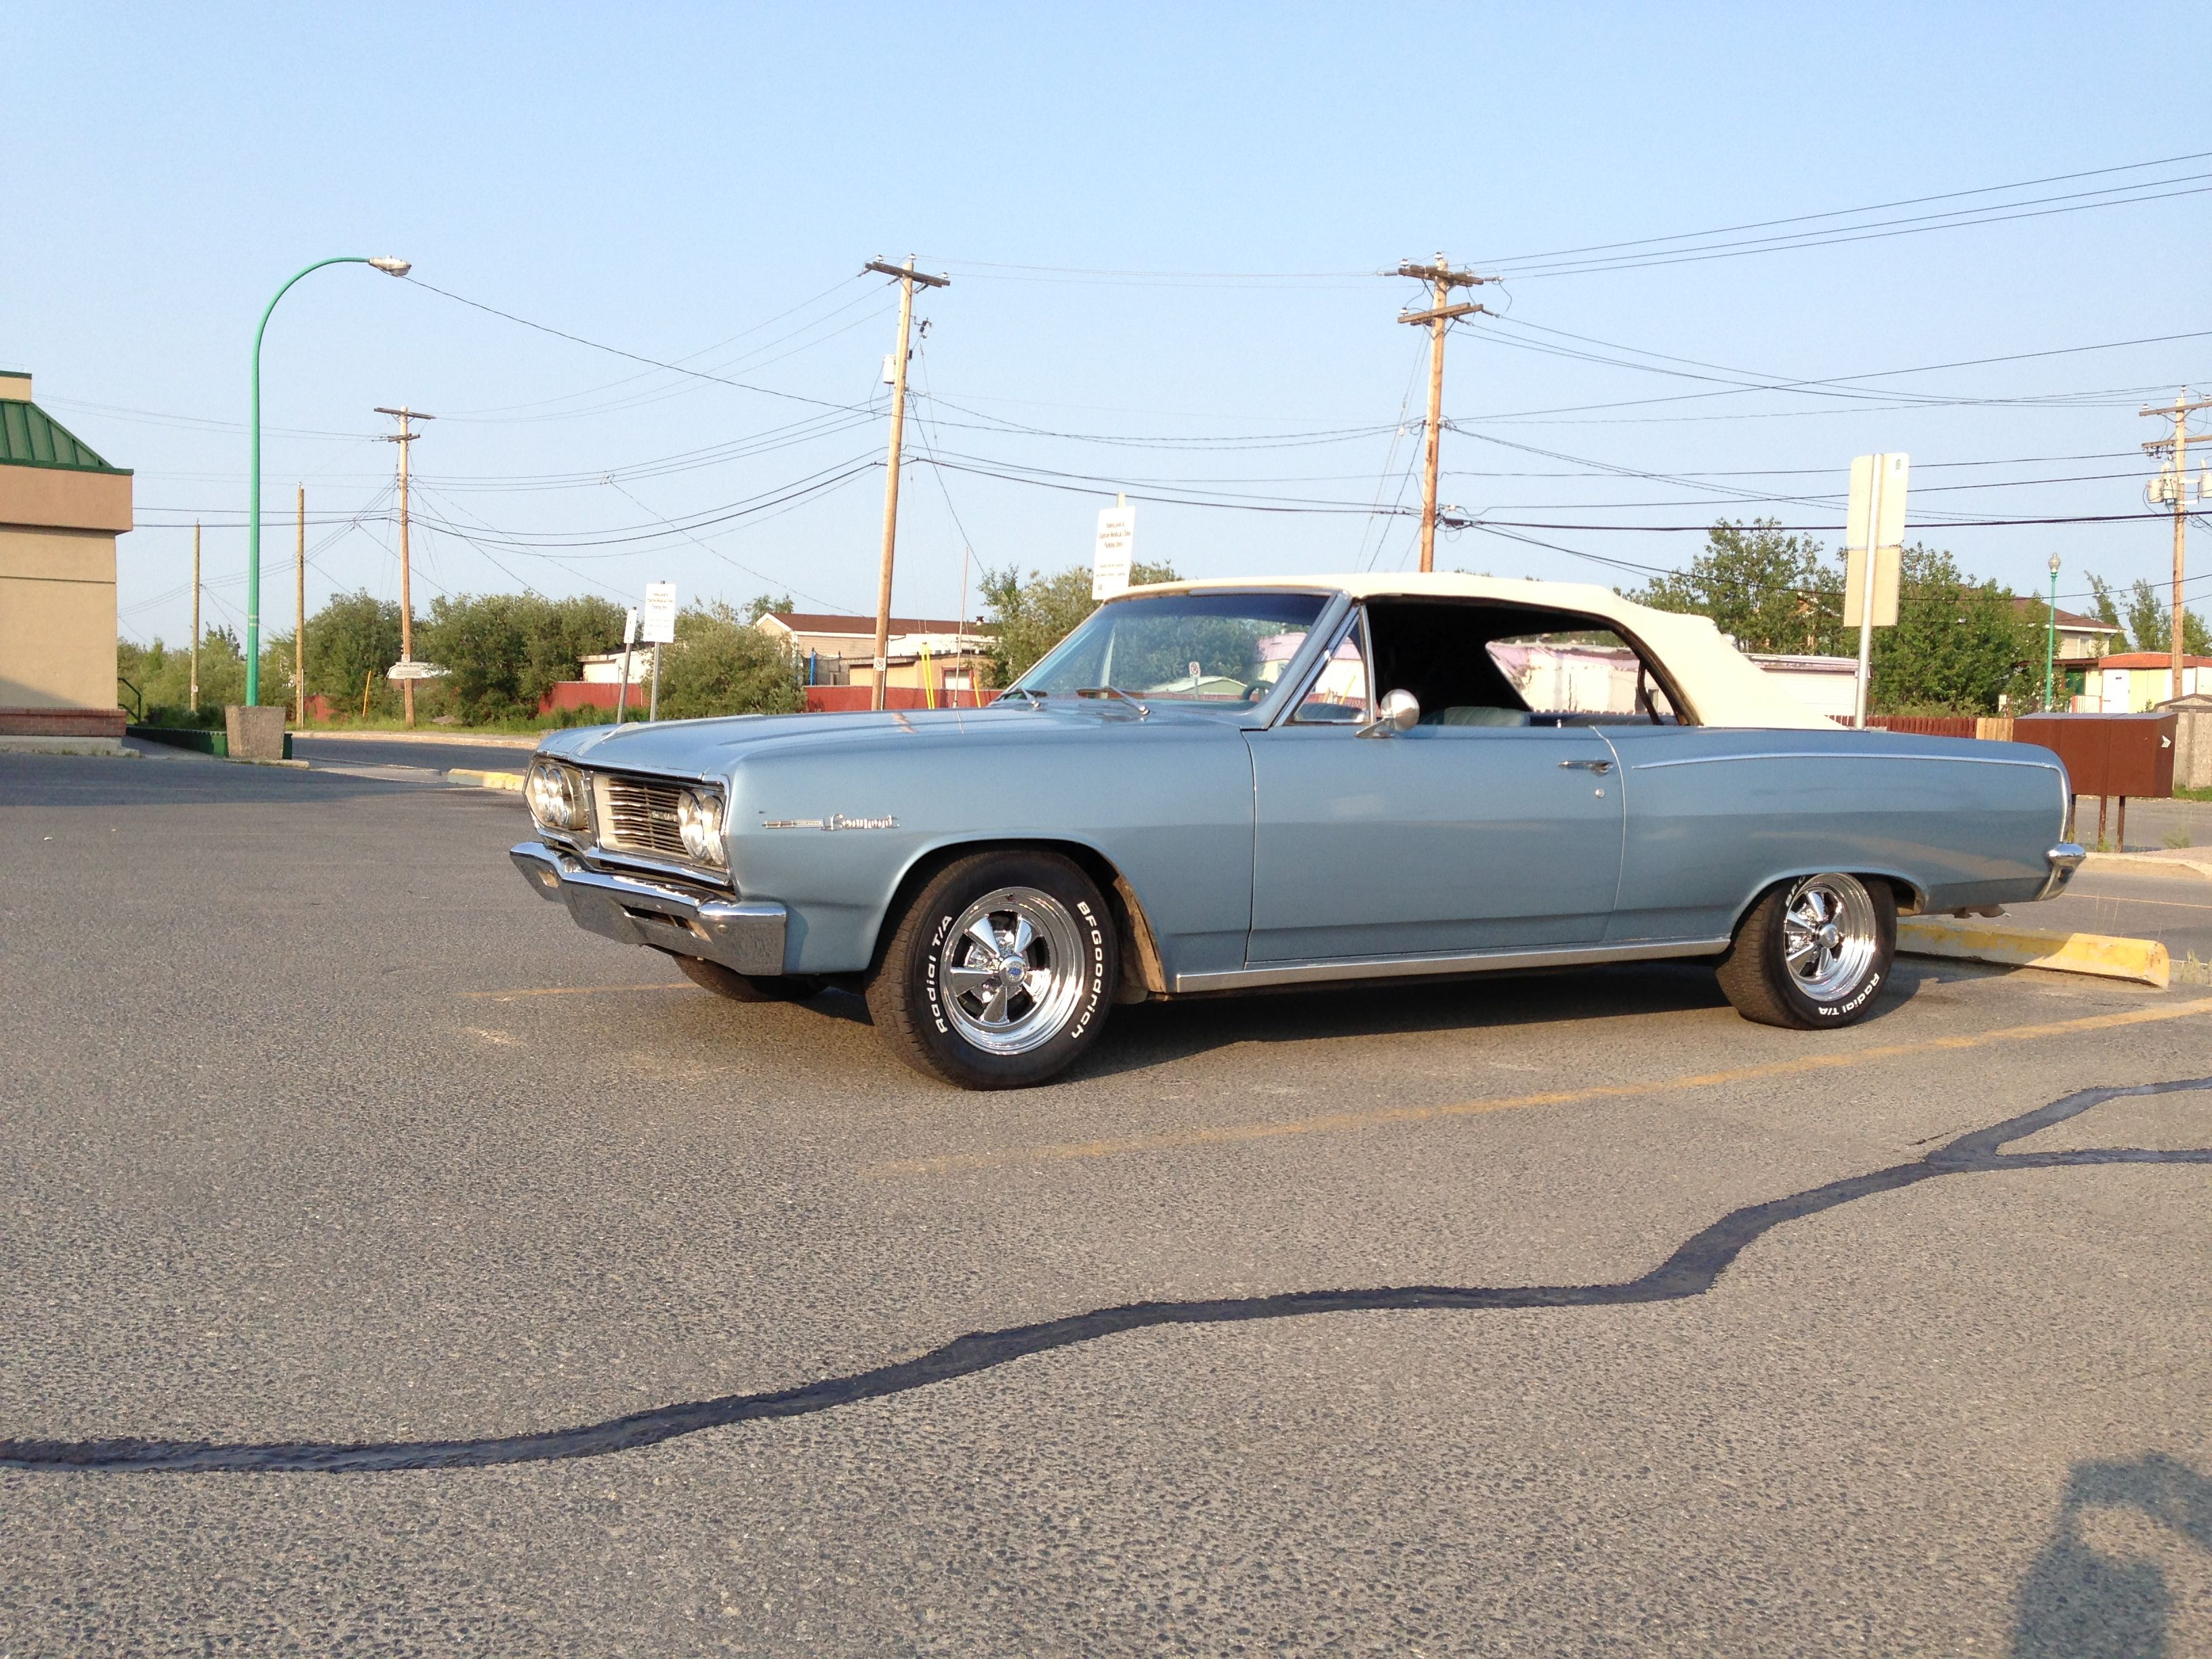 1965 Acadian Beaumont 396 Australian Muscle Cars Chevy Chevelle Chevrolet Chevelle